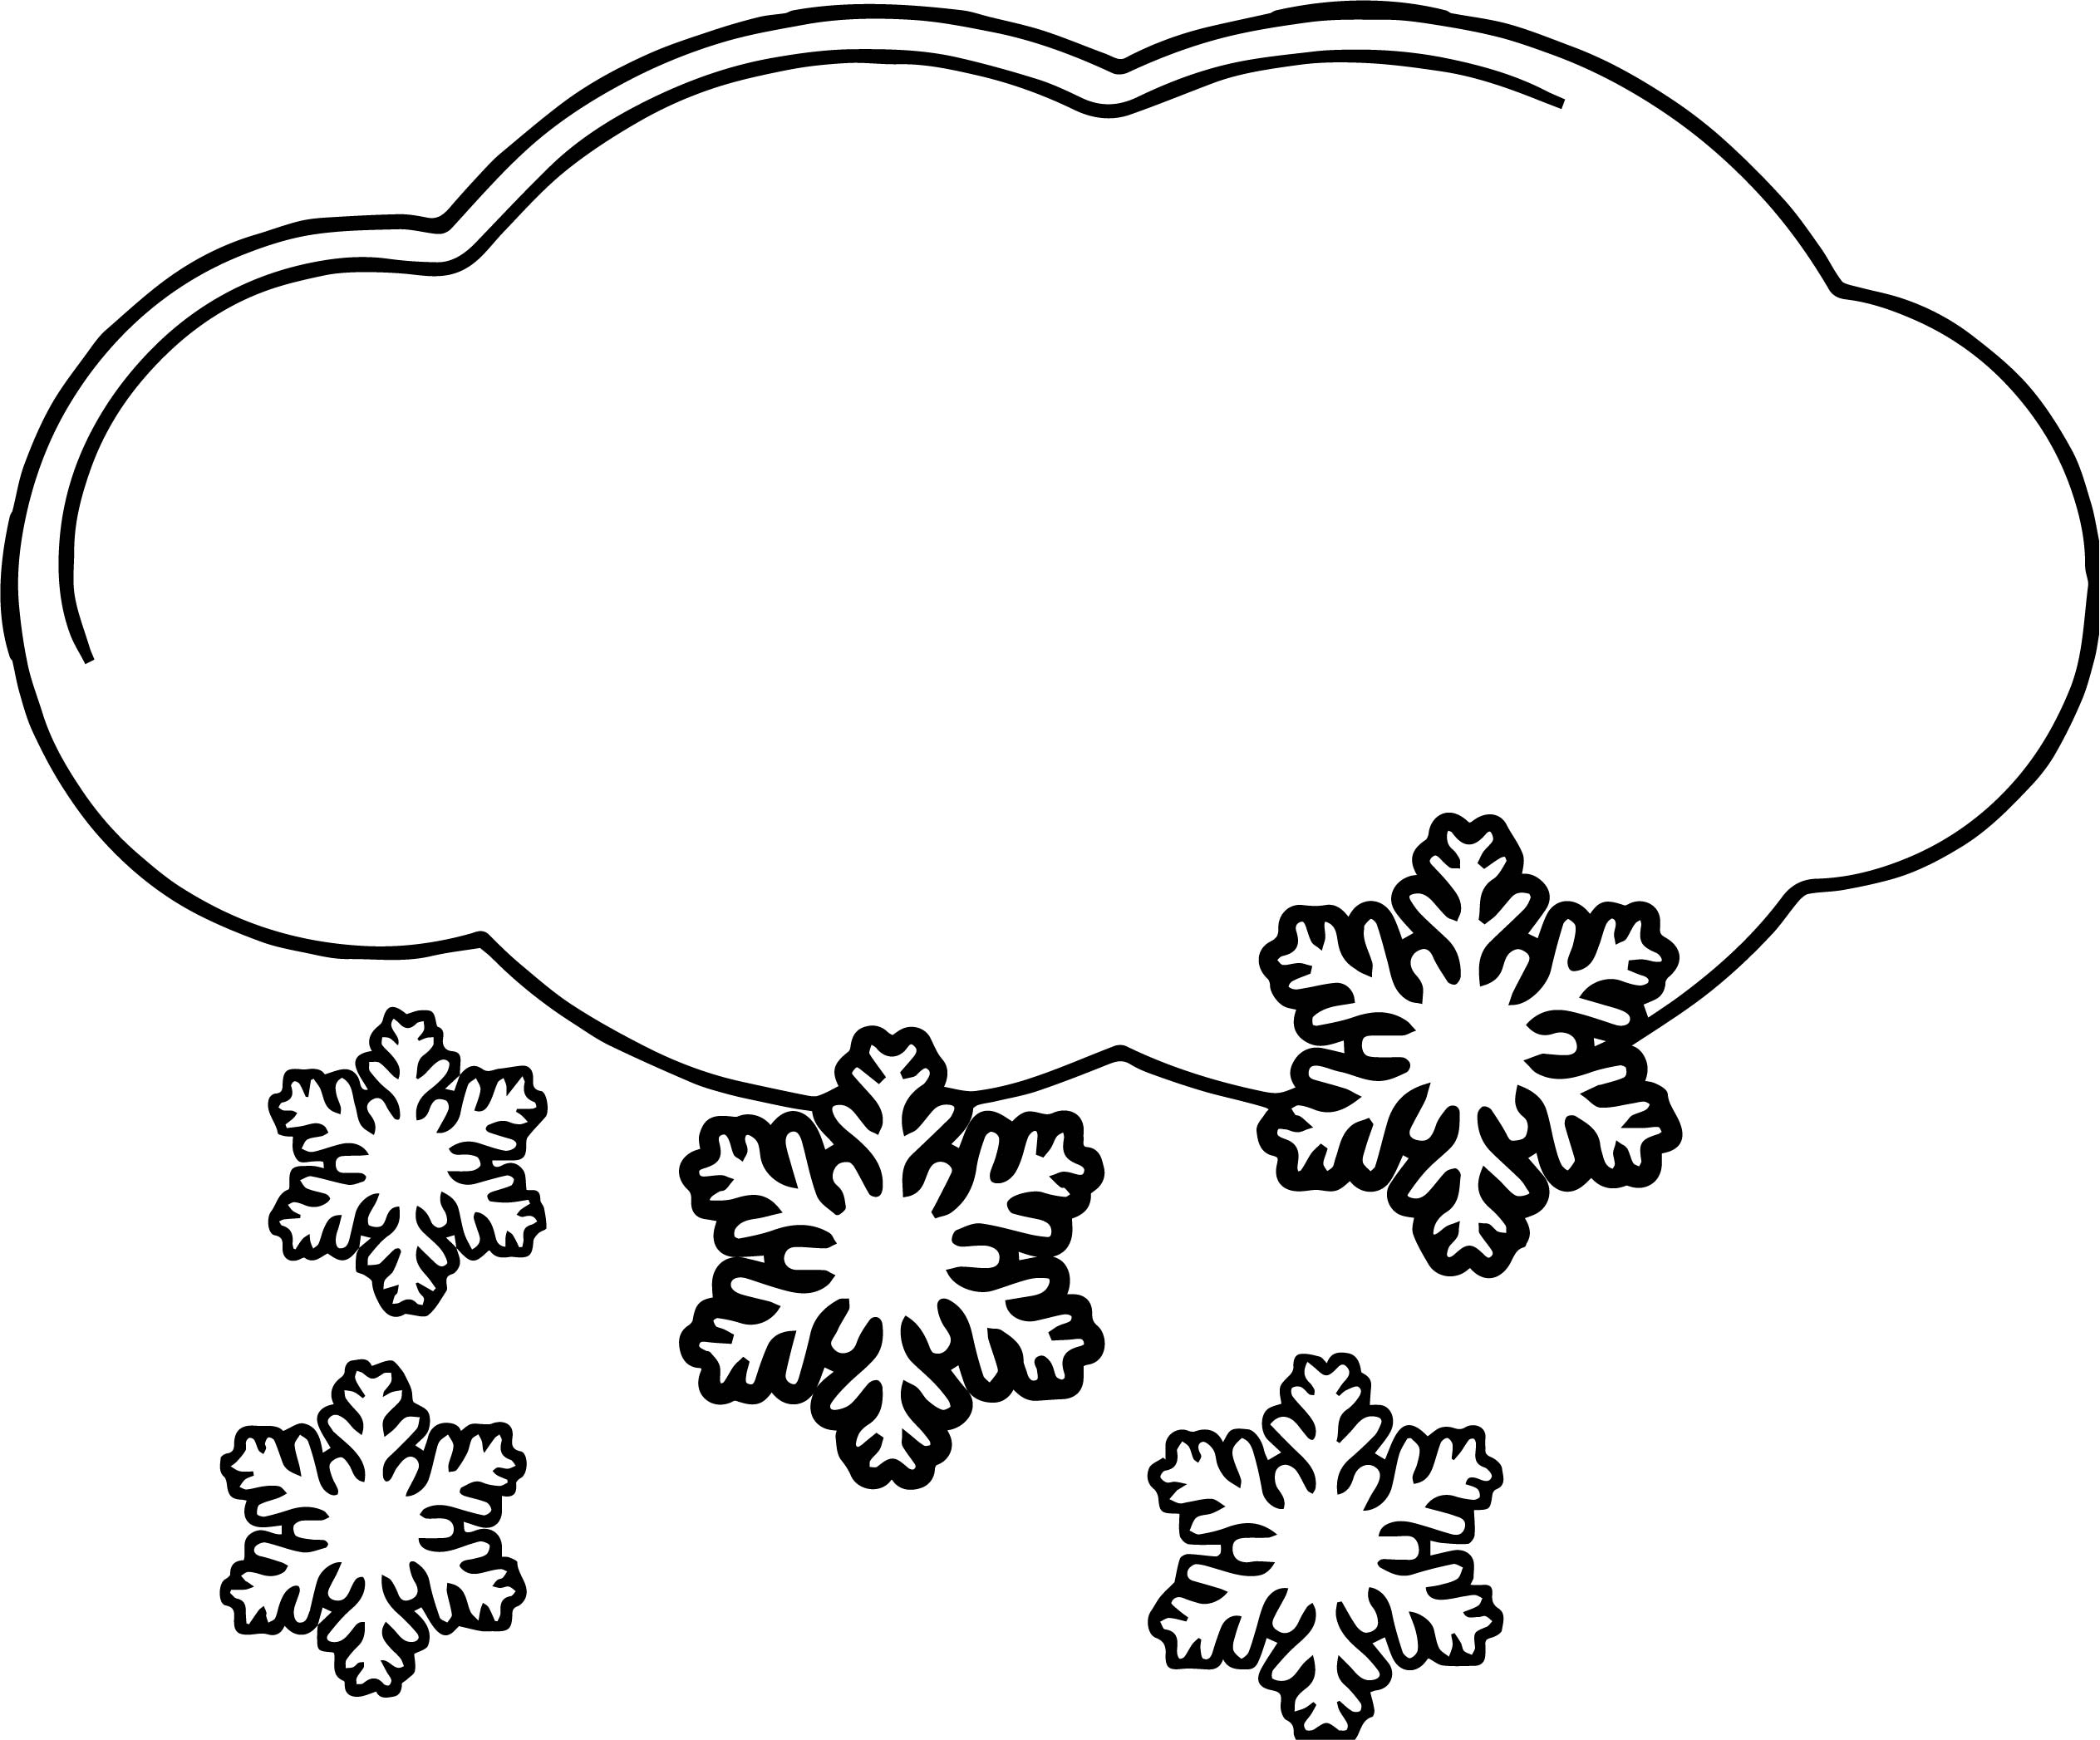 Printable coloring pages clouds - a-k-b.info